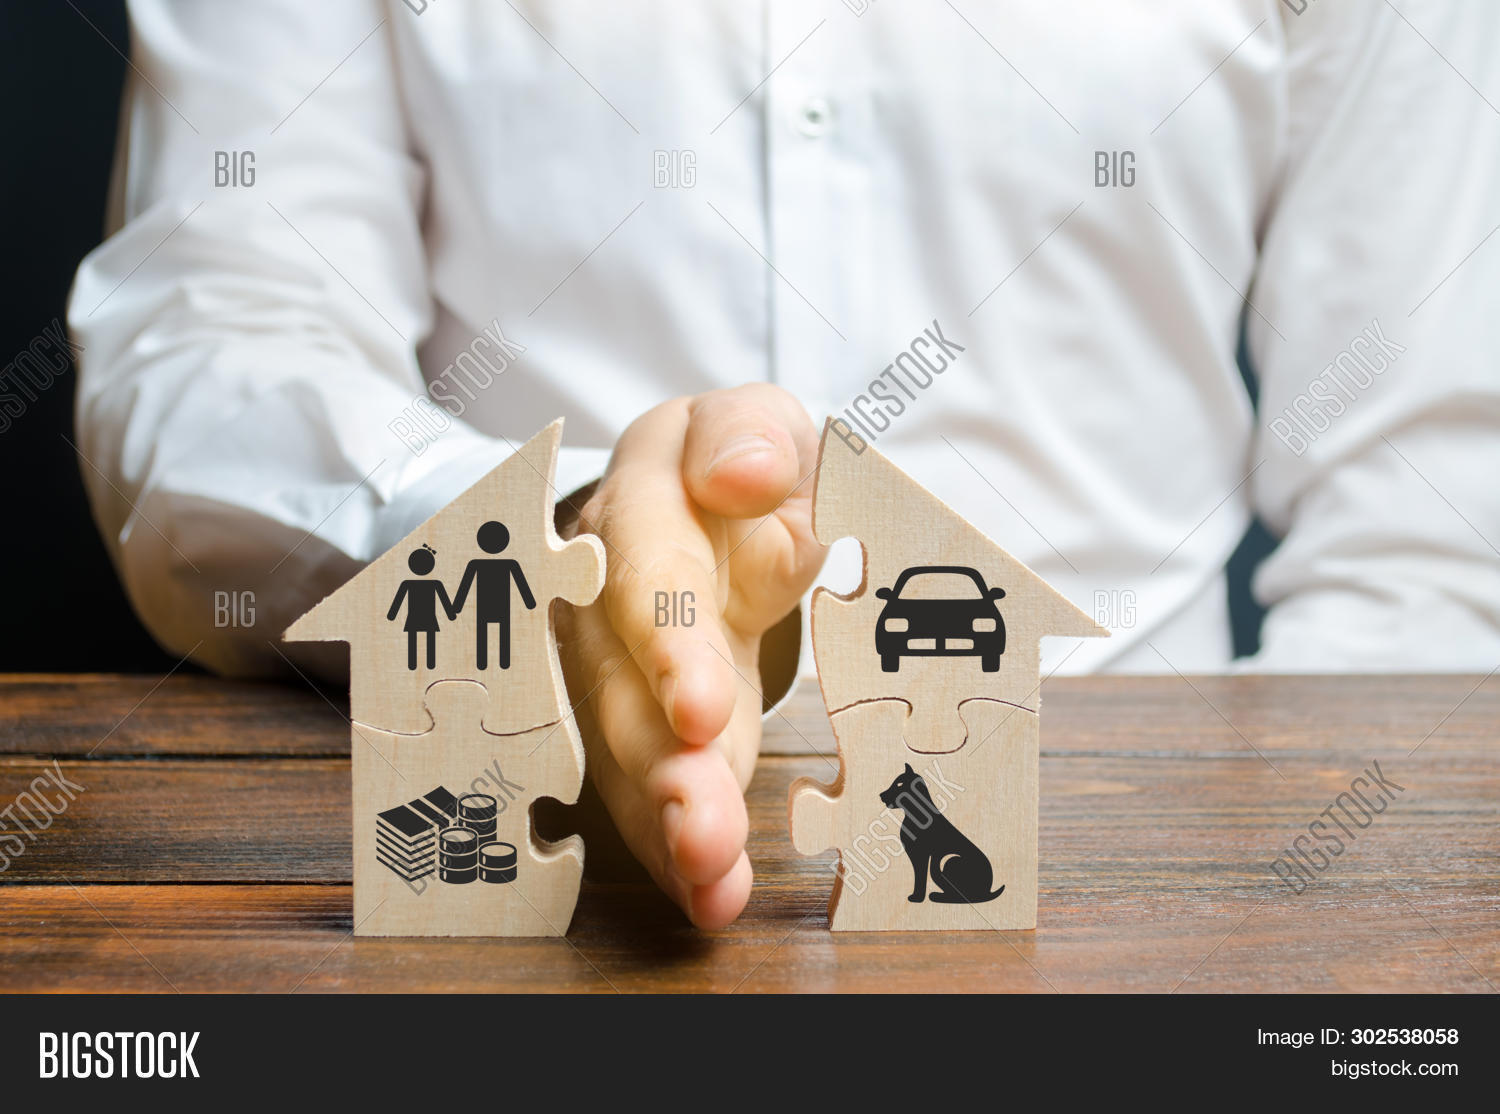 A Man Shares A House With His Palm With Images Of Property, Children And Pets. Divorce Concept, Prop